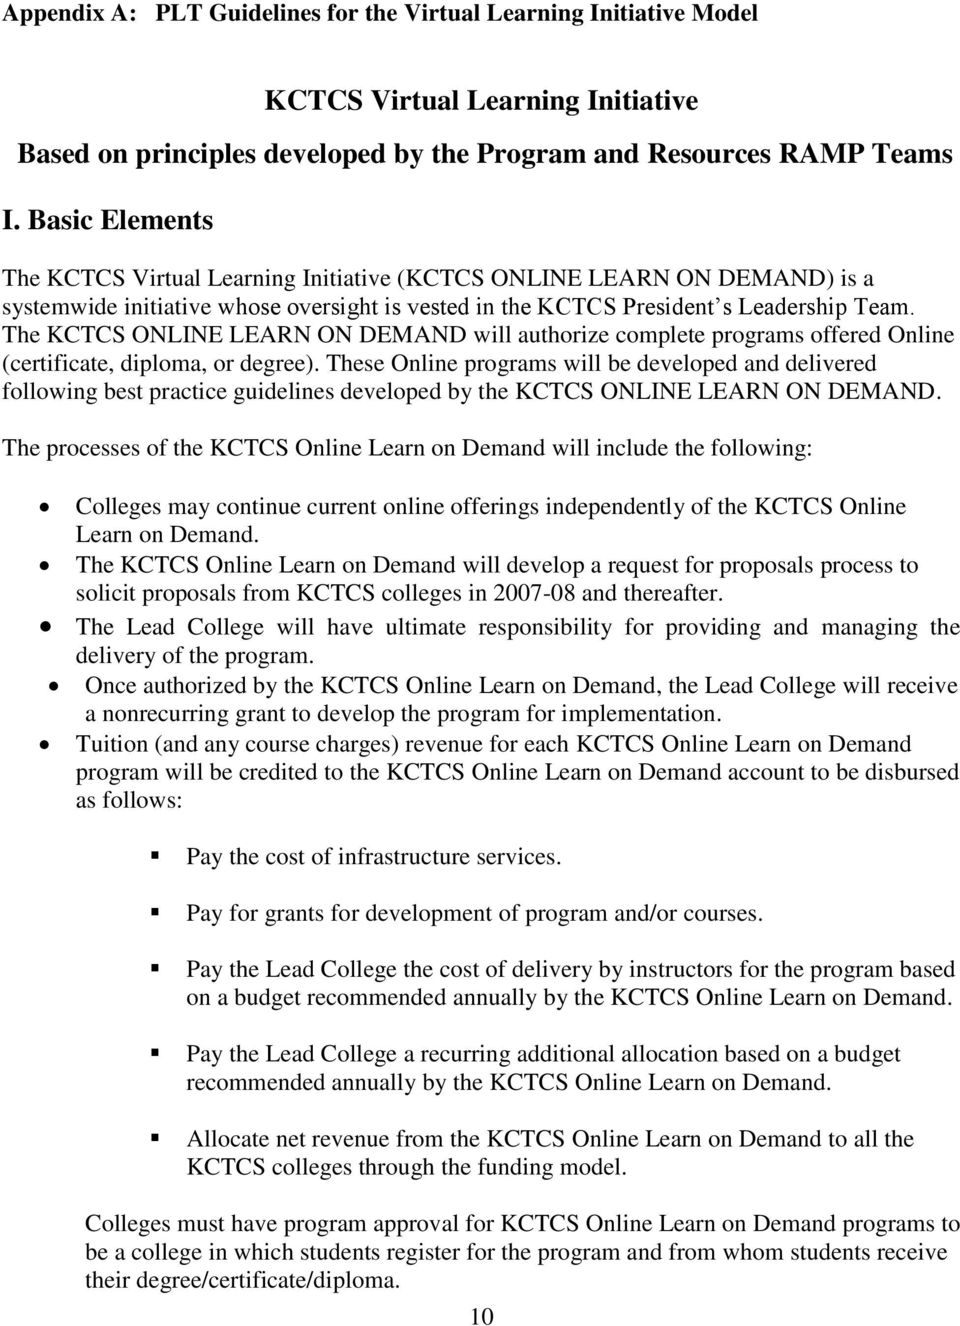 The KCTCS ONLINE LEARN ON DEMAND will authorize complete programs offered Online (certificate, diploma, or degree).